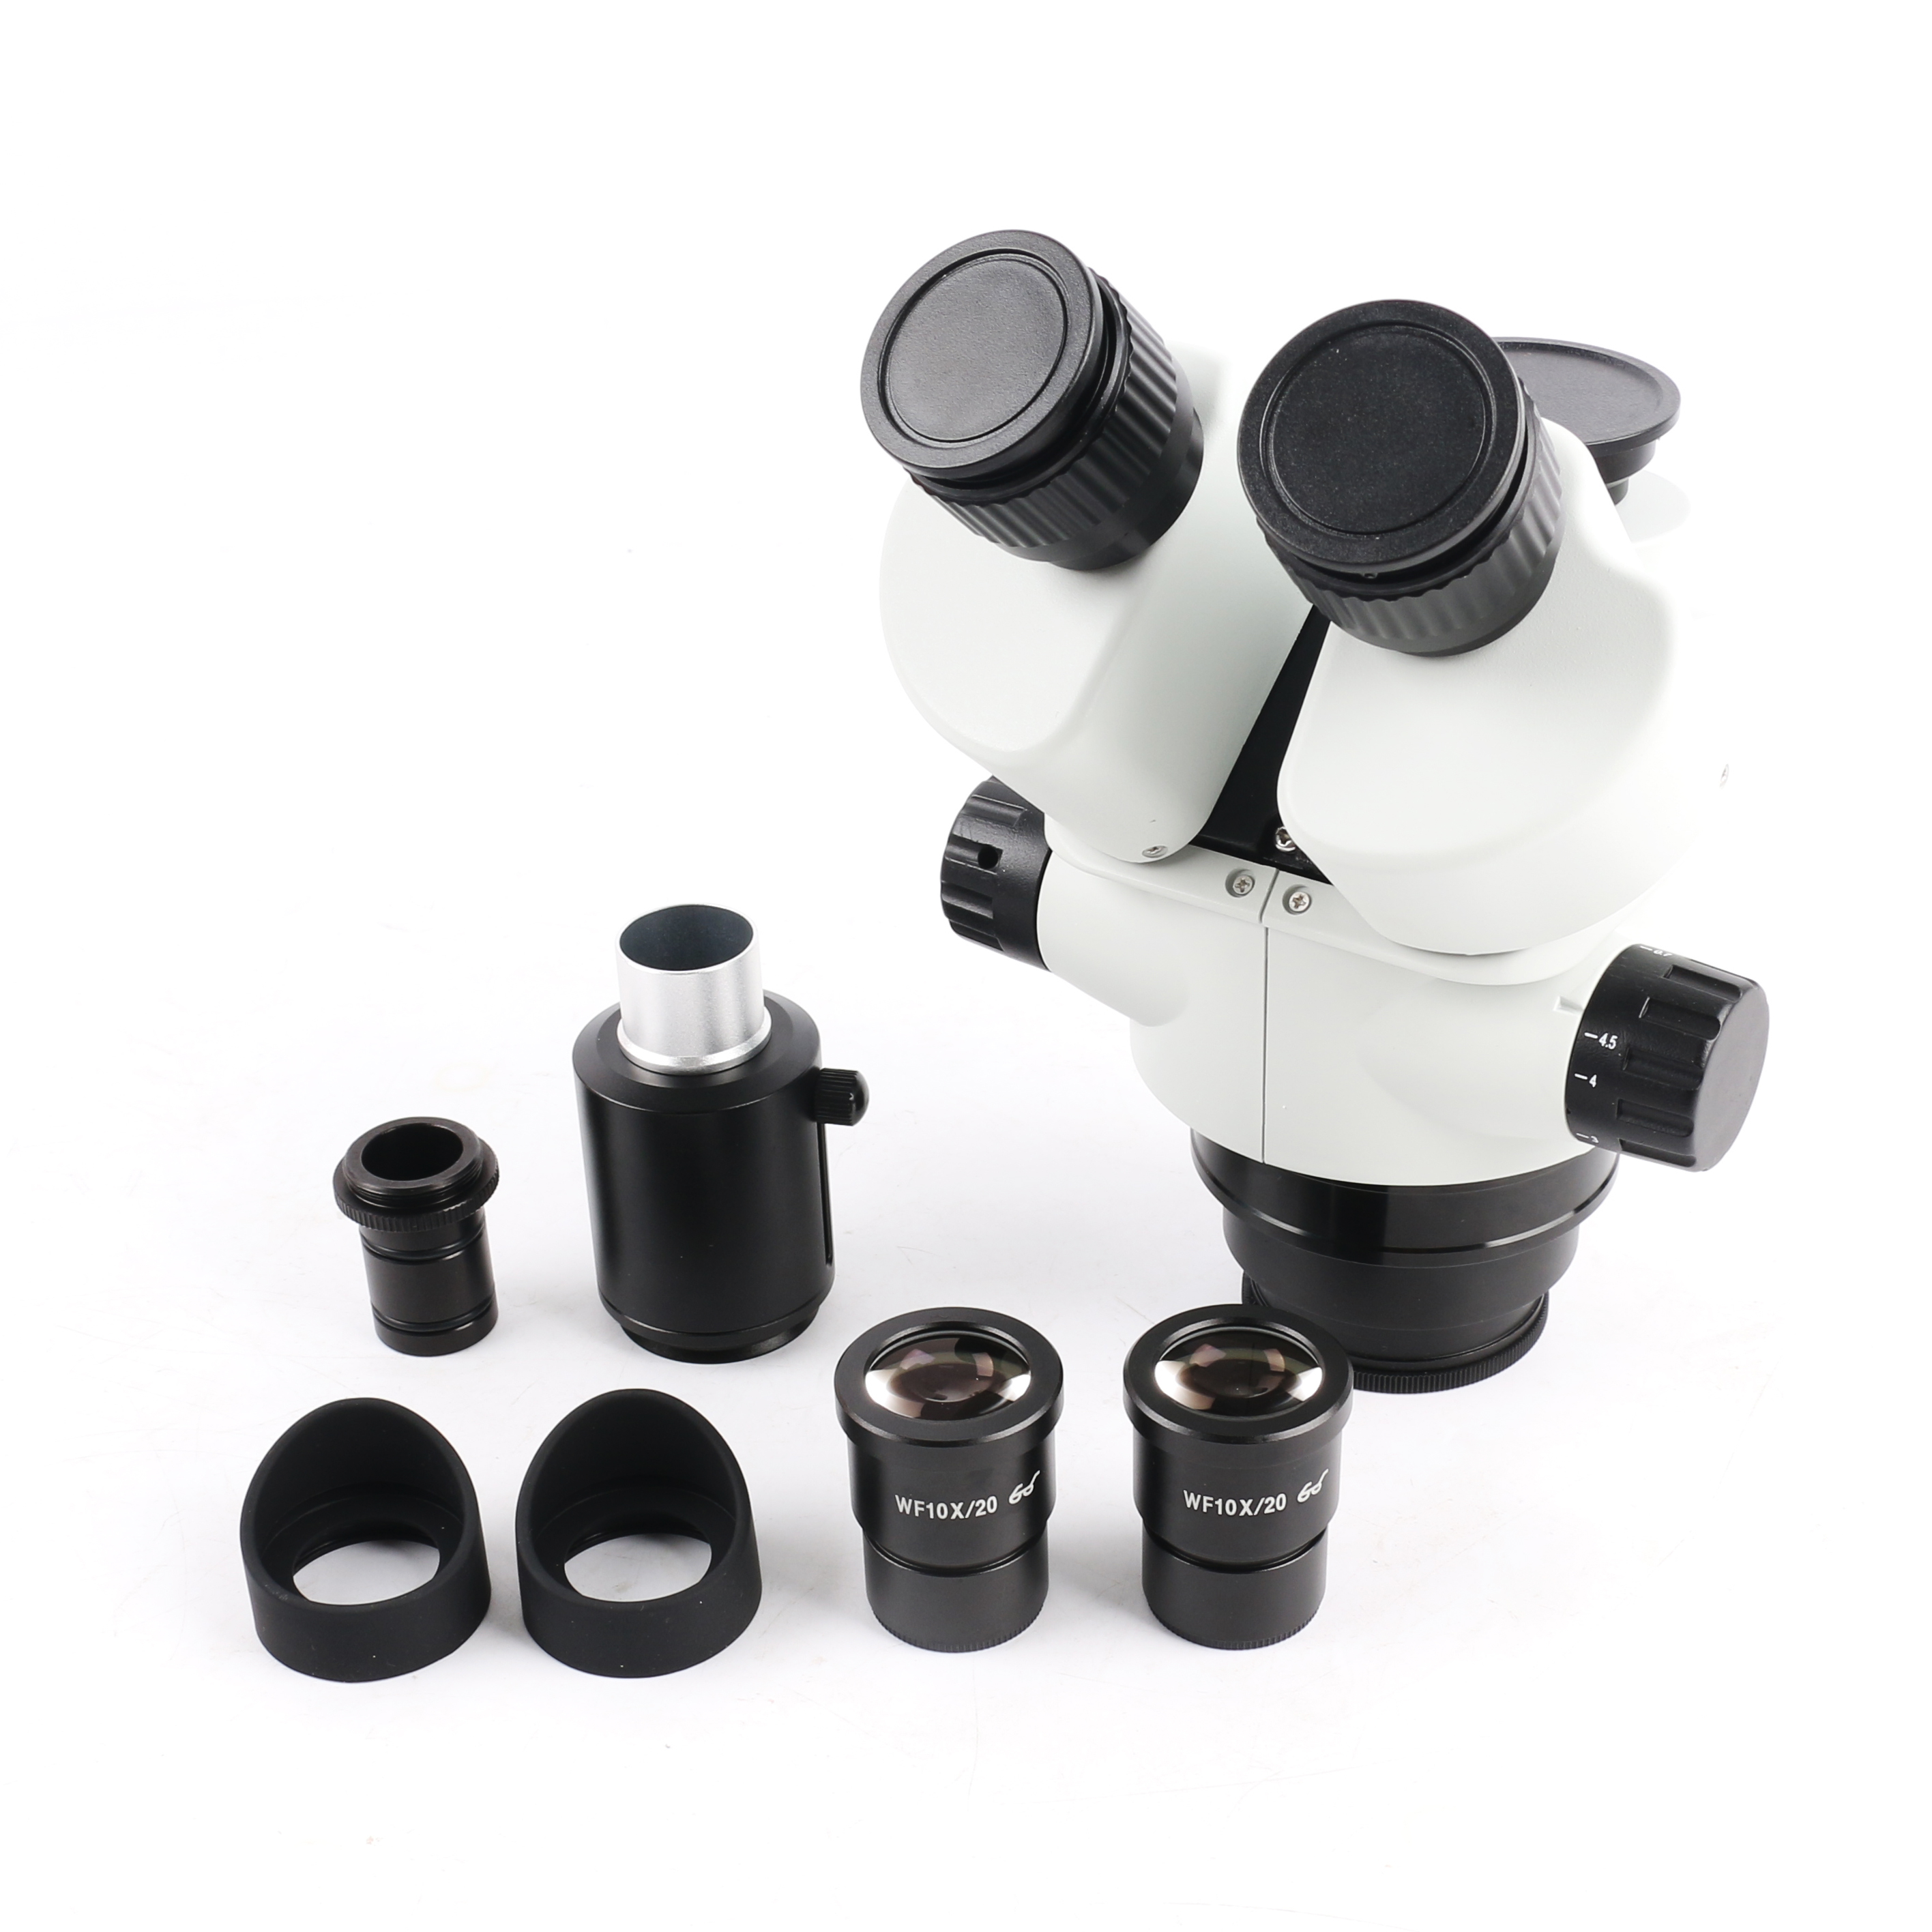 7-45X Continuous zoom Simul-Focal Trinocular Stereo Zoom Microscope Head WF10X/20mm Eyepiece